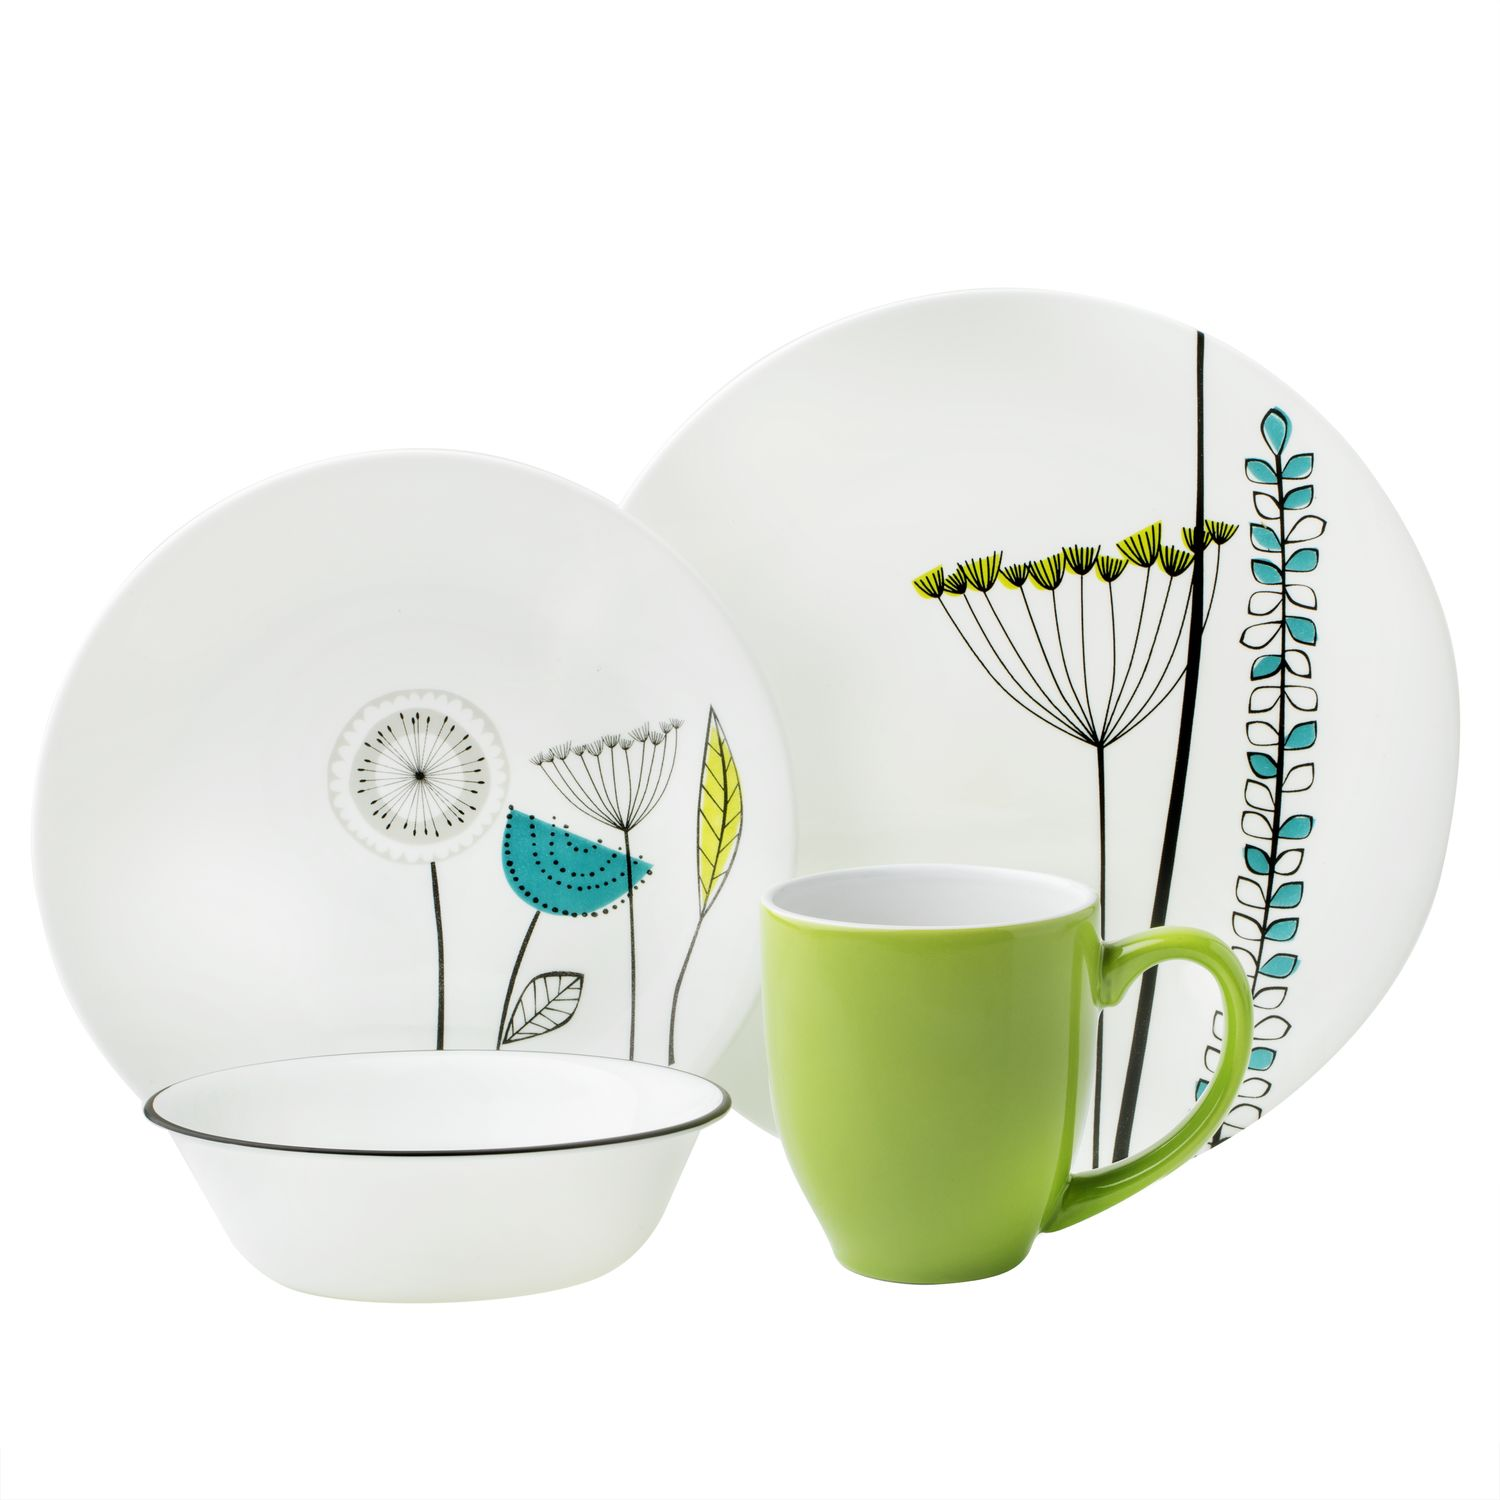 Vive Abstract Meadow 16-pc Dinnerware Set  sc 1 st  Designer Dinnerware & Vive Abstract Meadow 16-pc Dinnerware Set Review | Corelle Dinnerware